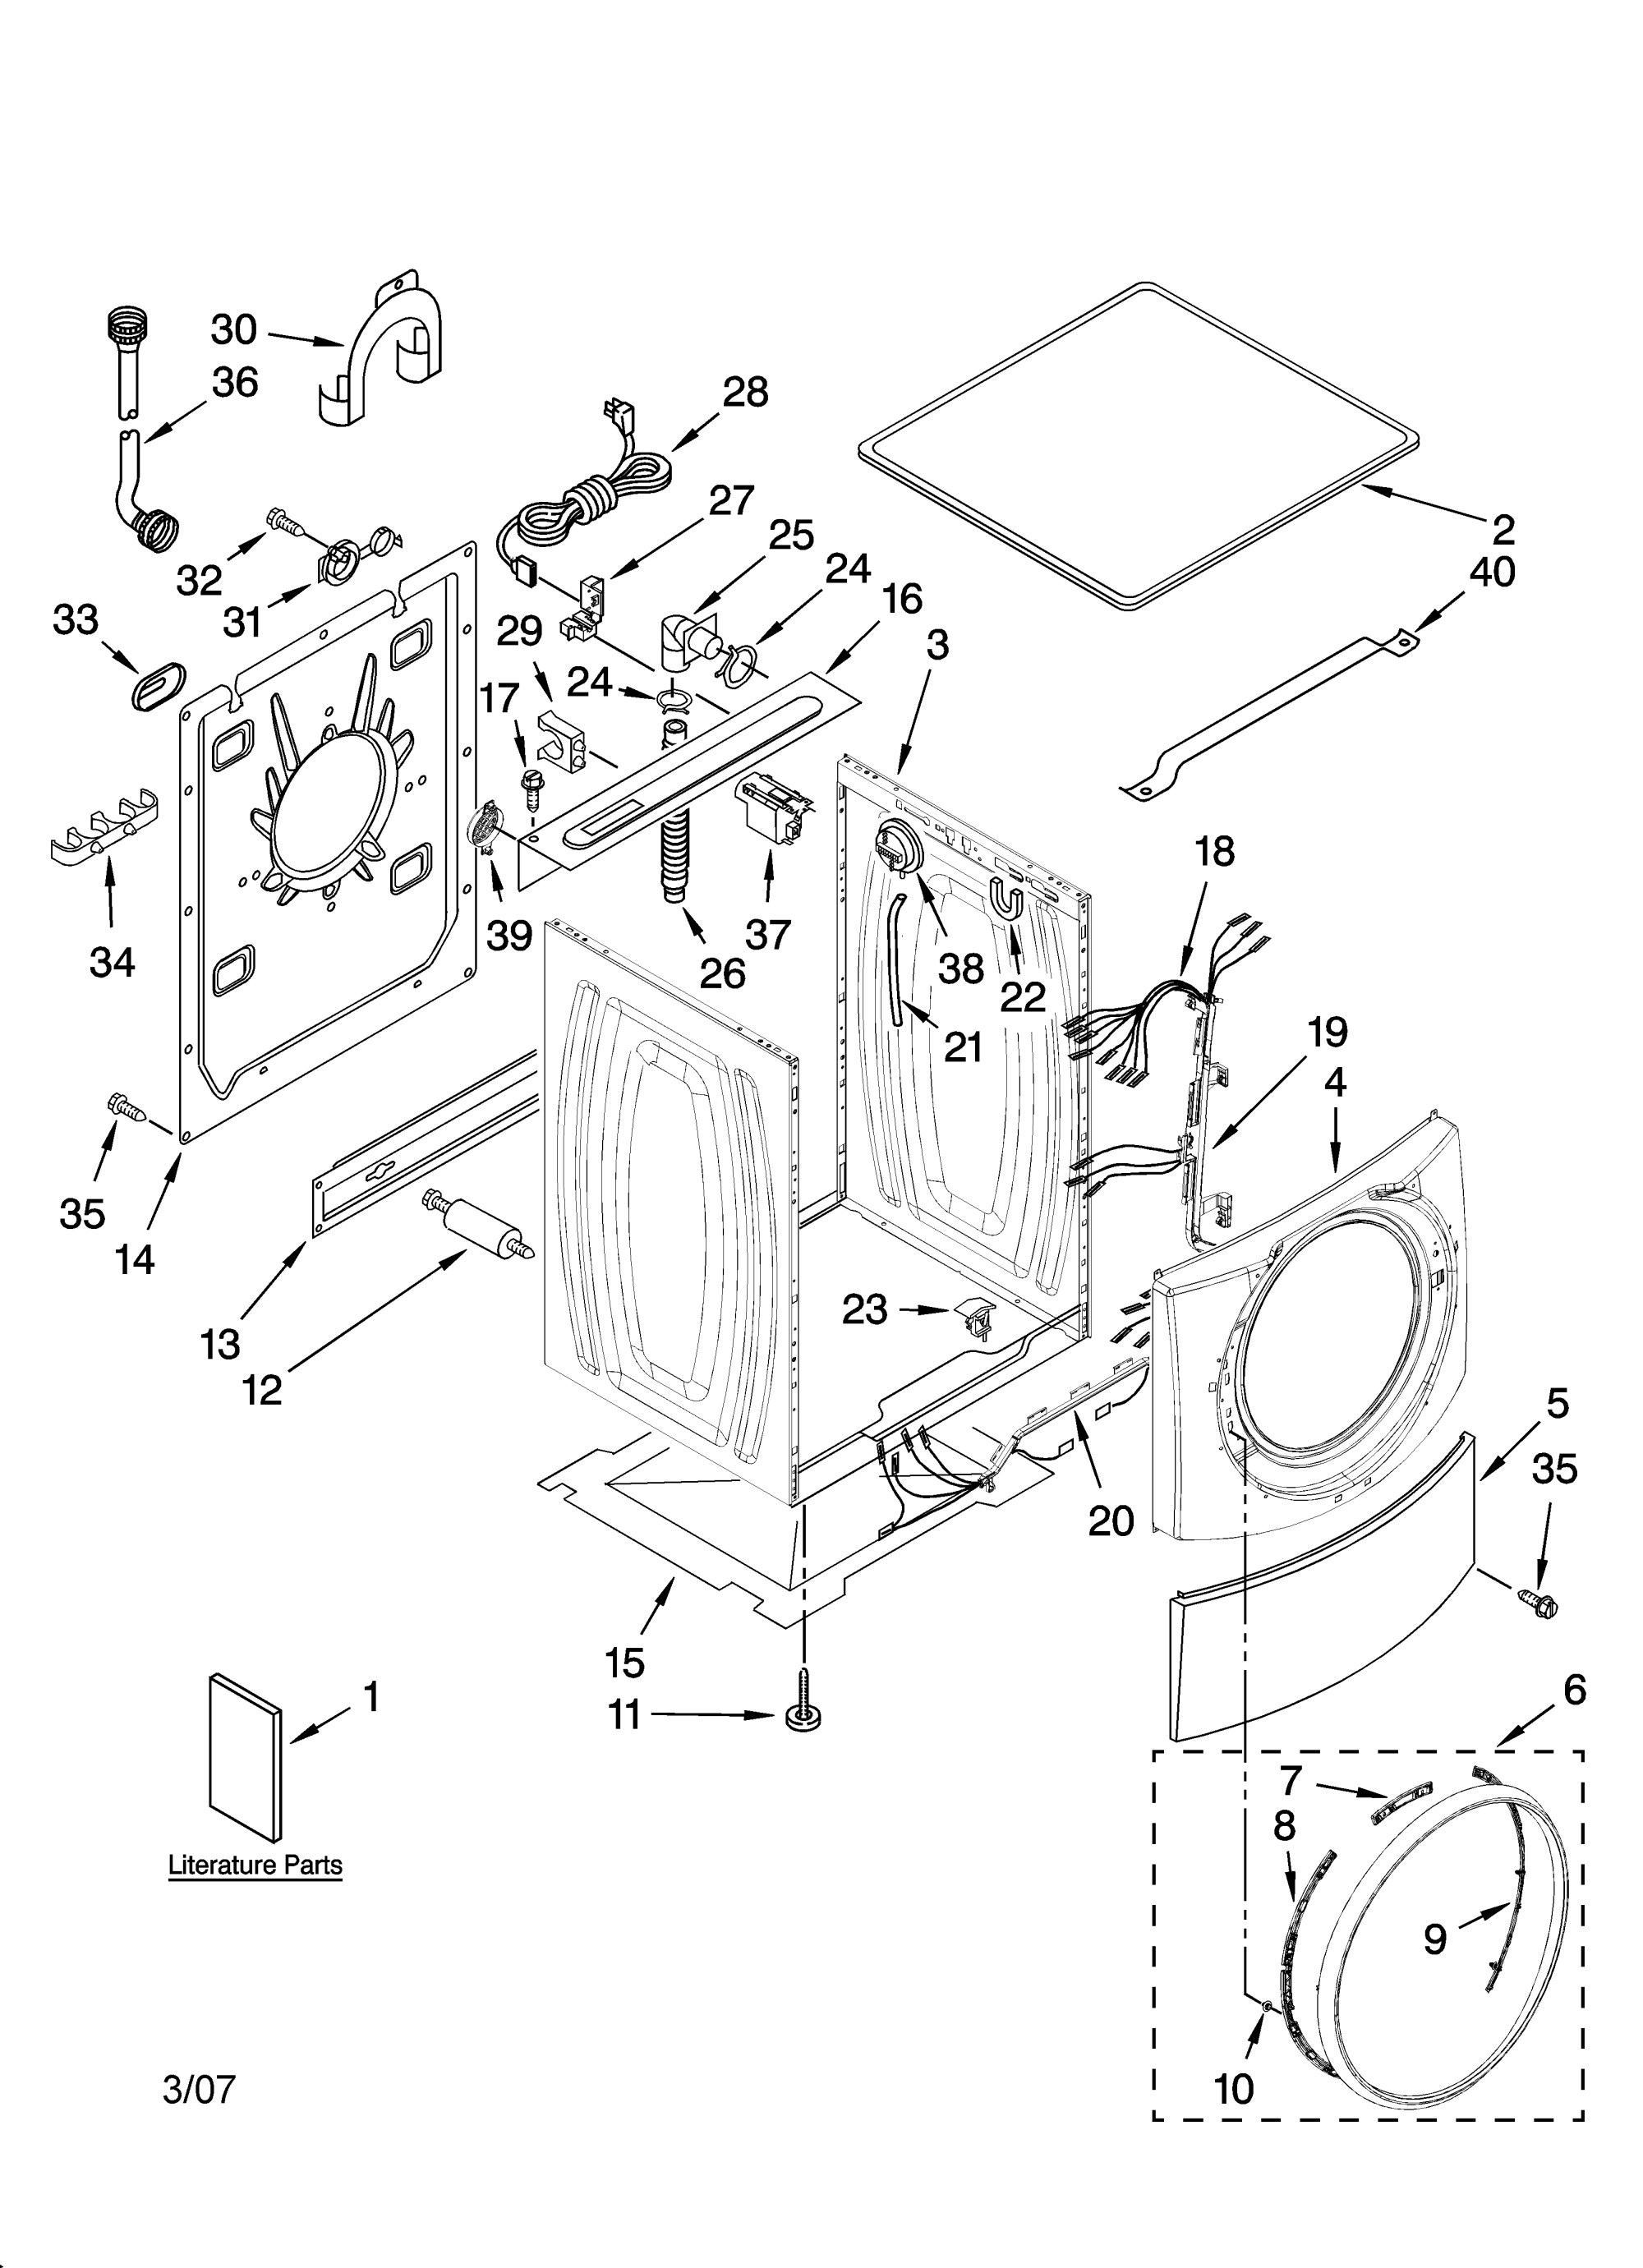 Wiring Diagram For Kenmore Elite Dryer - on